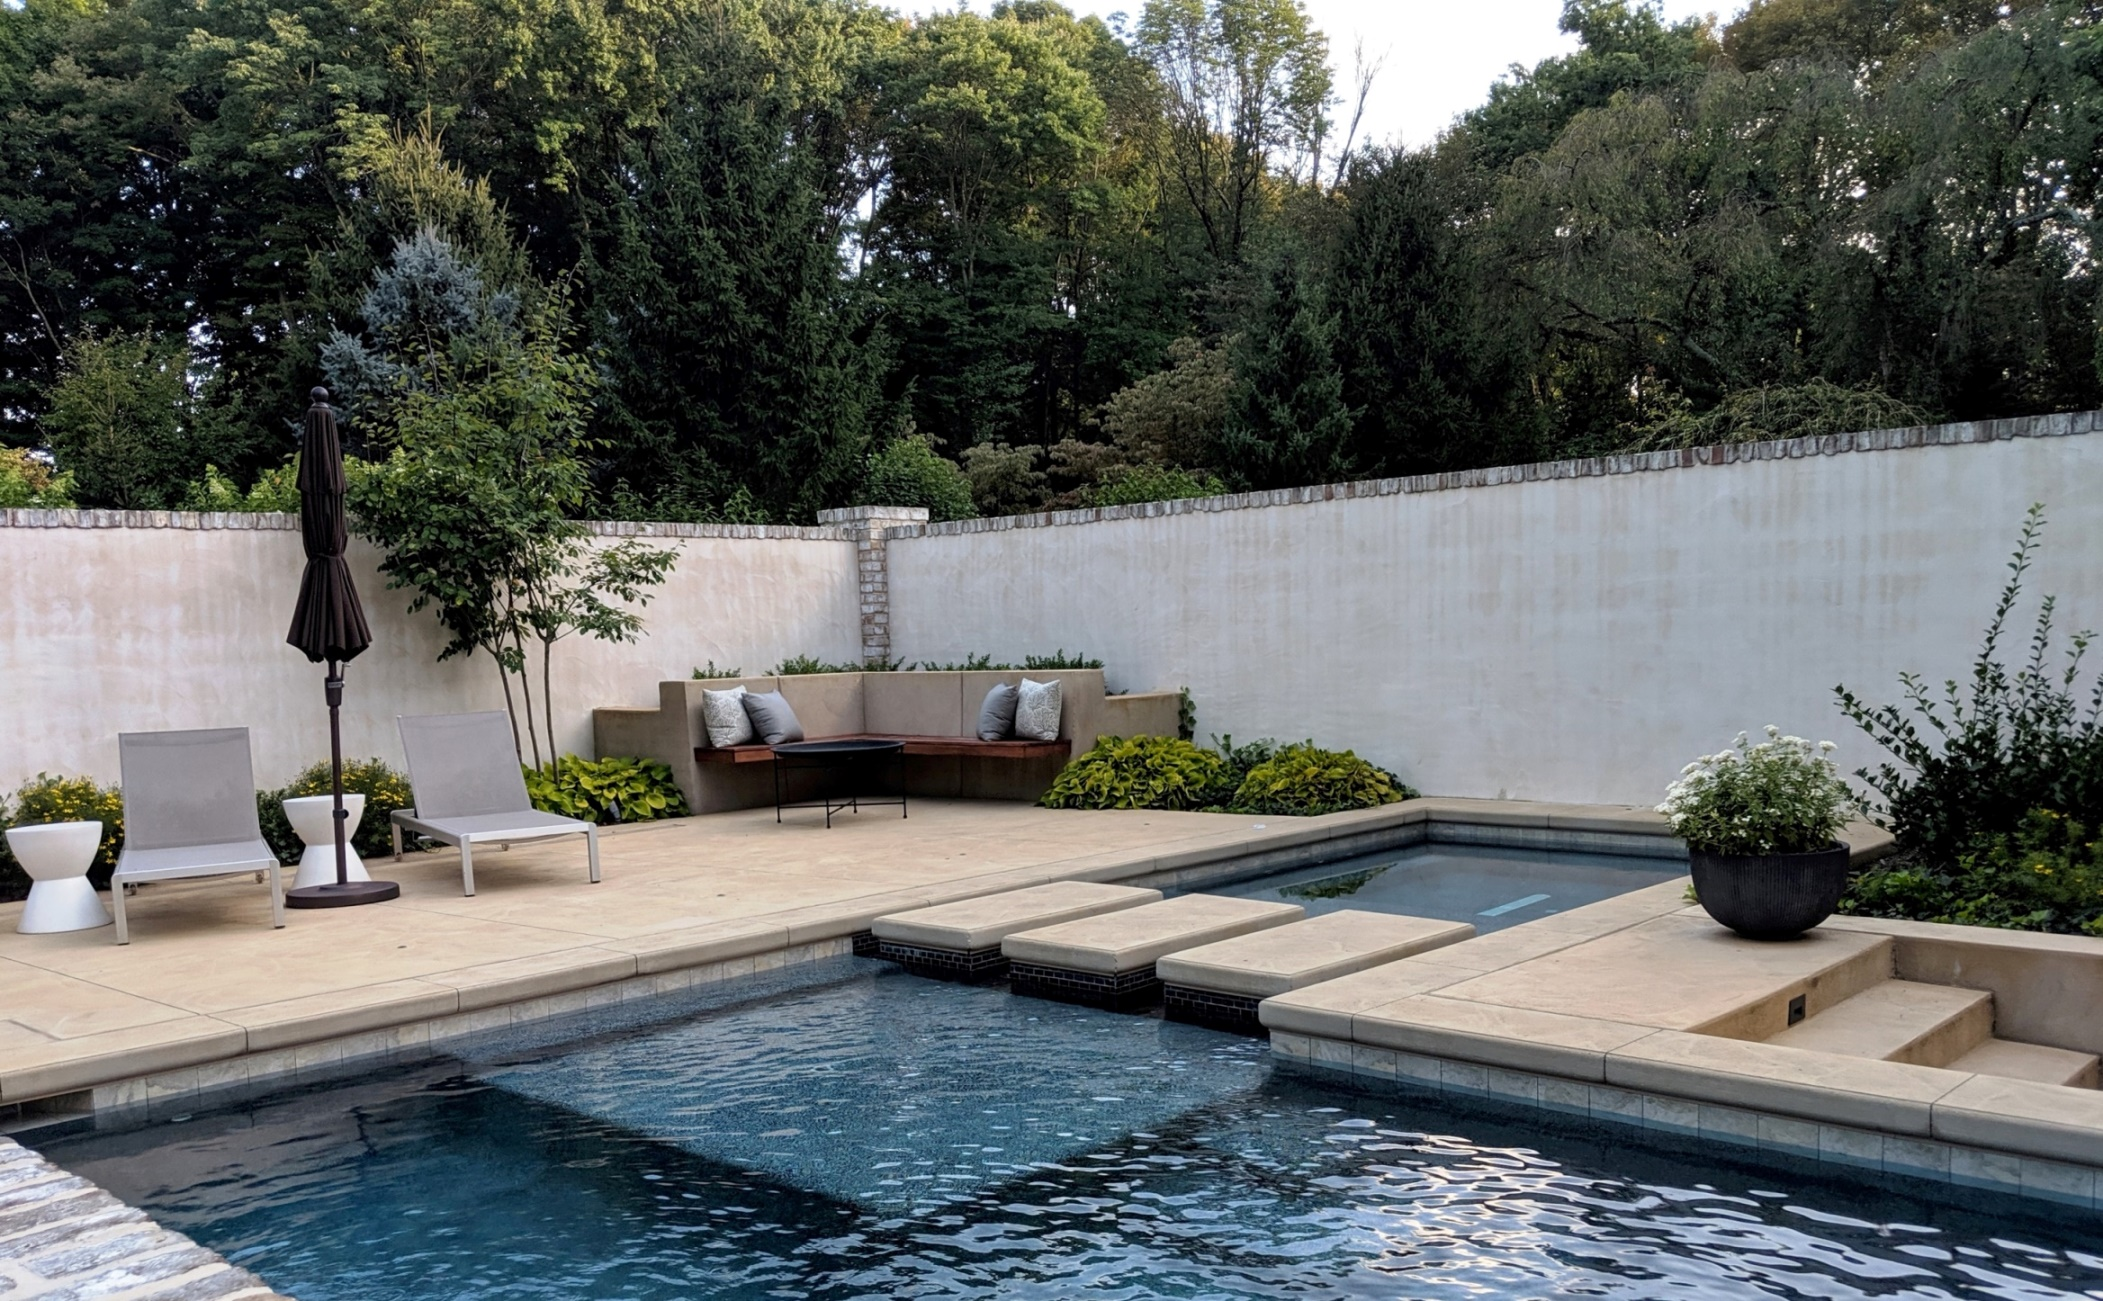 Contemporary pool and private courtyard create elegant oasis, Lancaster, PA